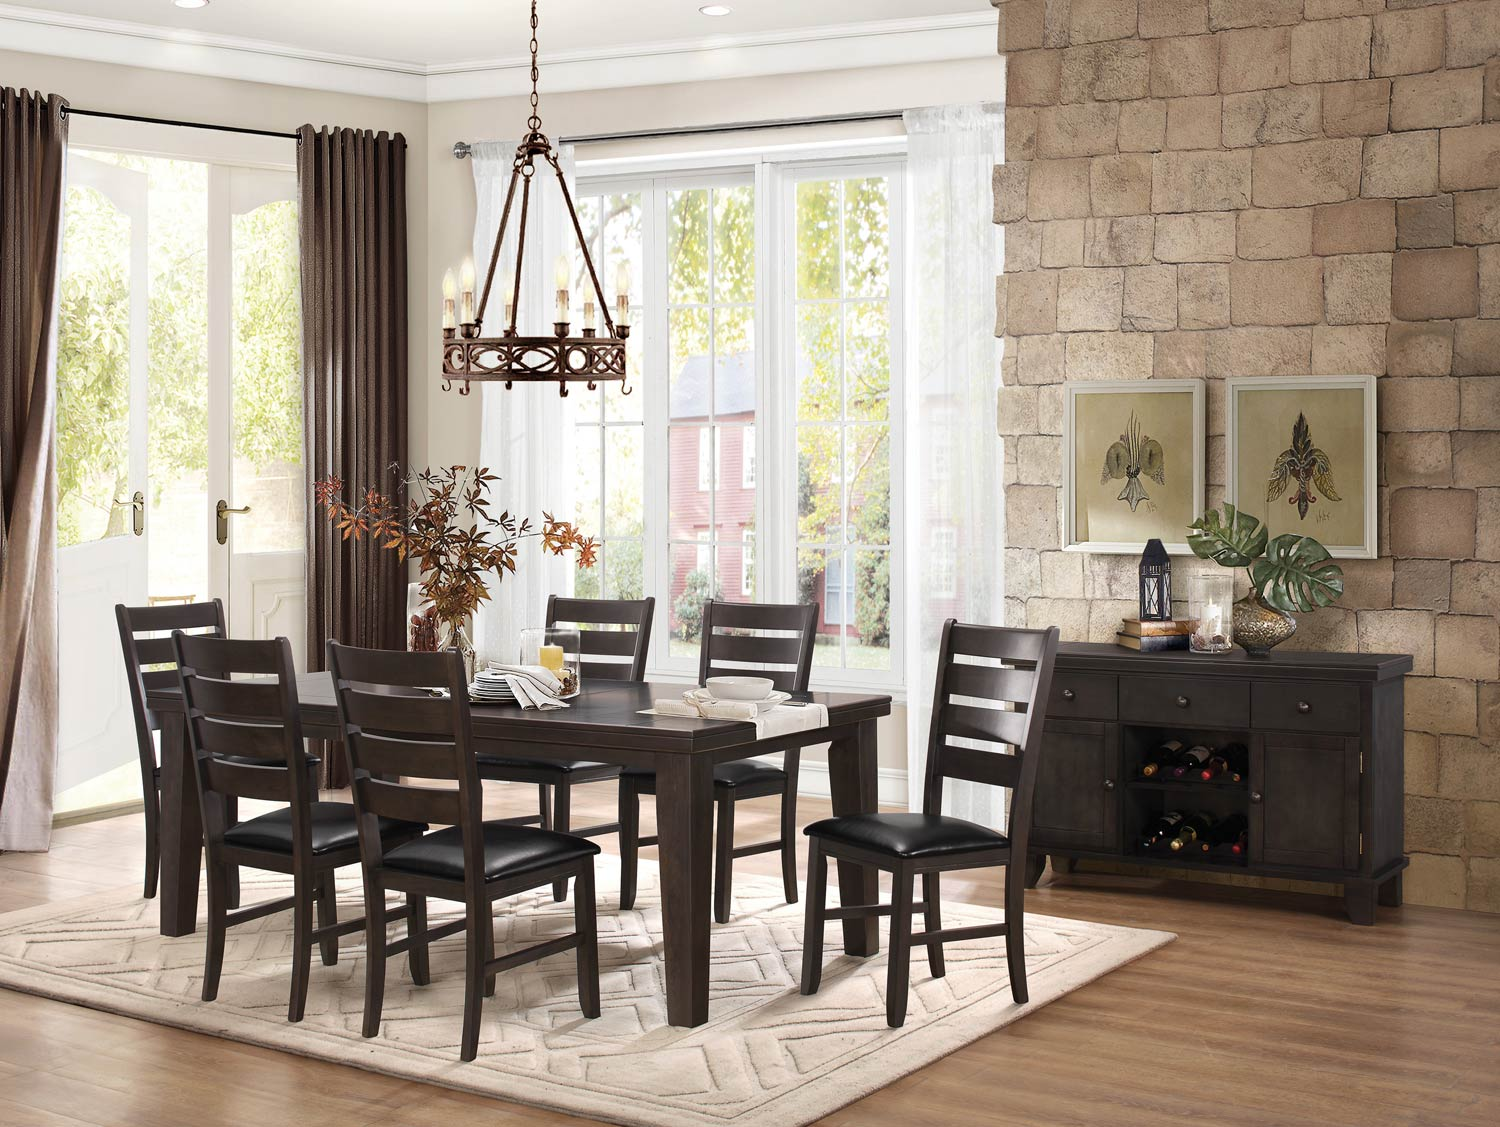 Homelegance Ameillia Dining Set - Grey/Brown